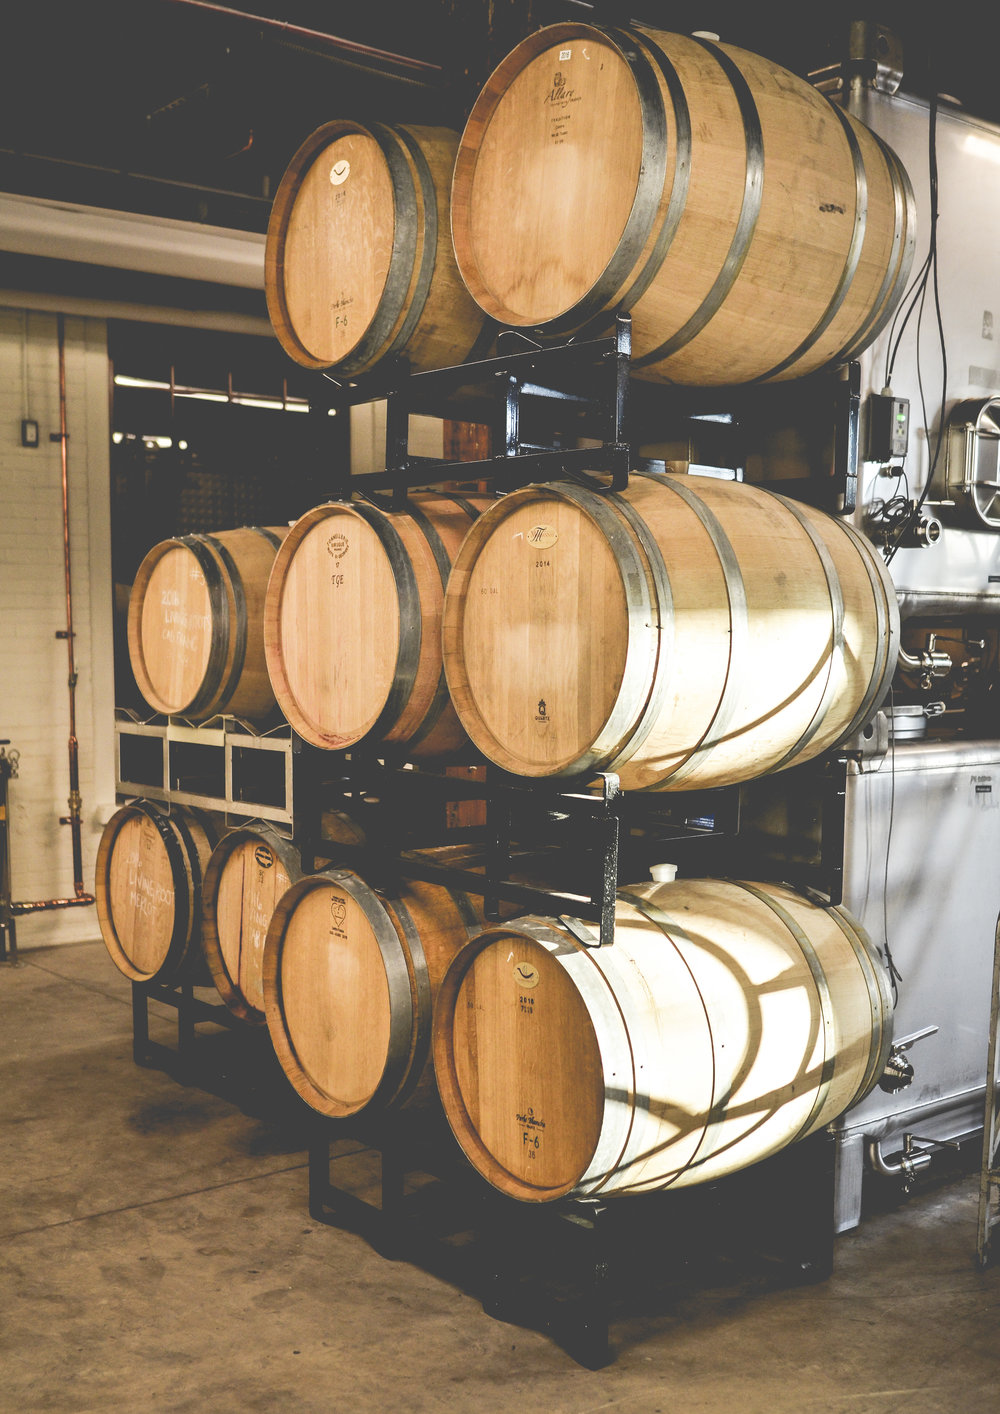 French barrels in the Living Roots Wine & Co. urban winery in Rochester, New York.